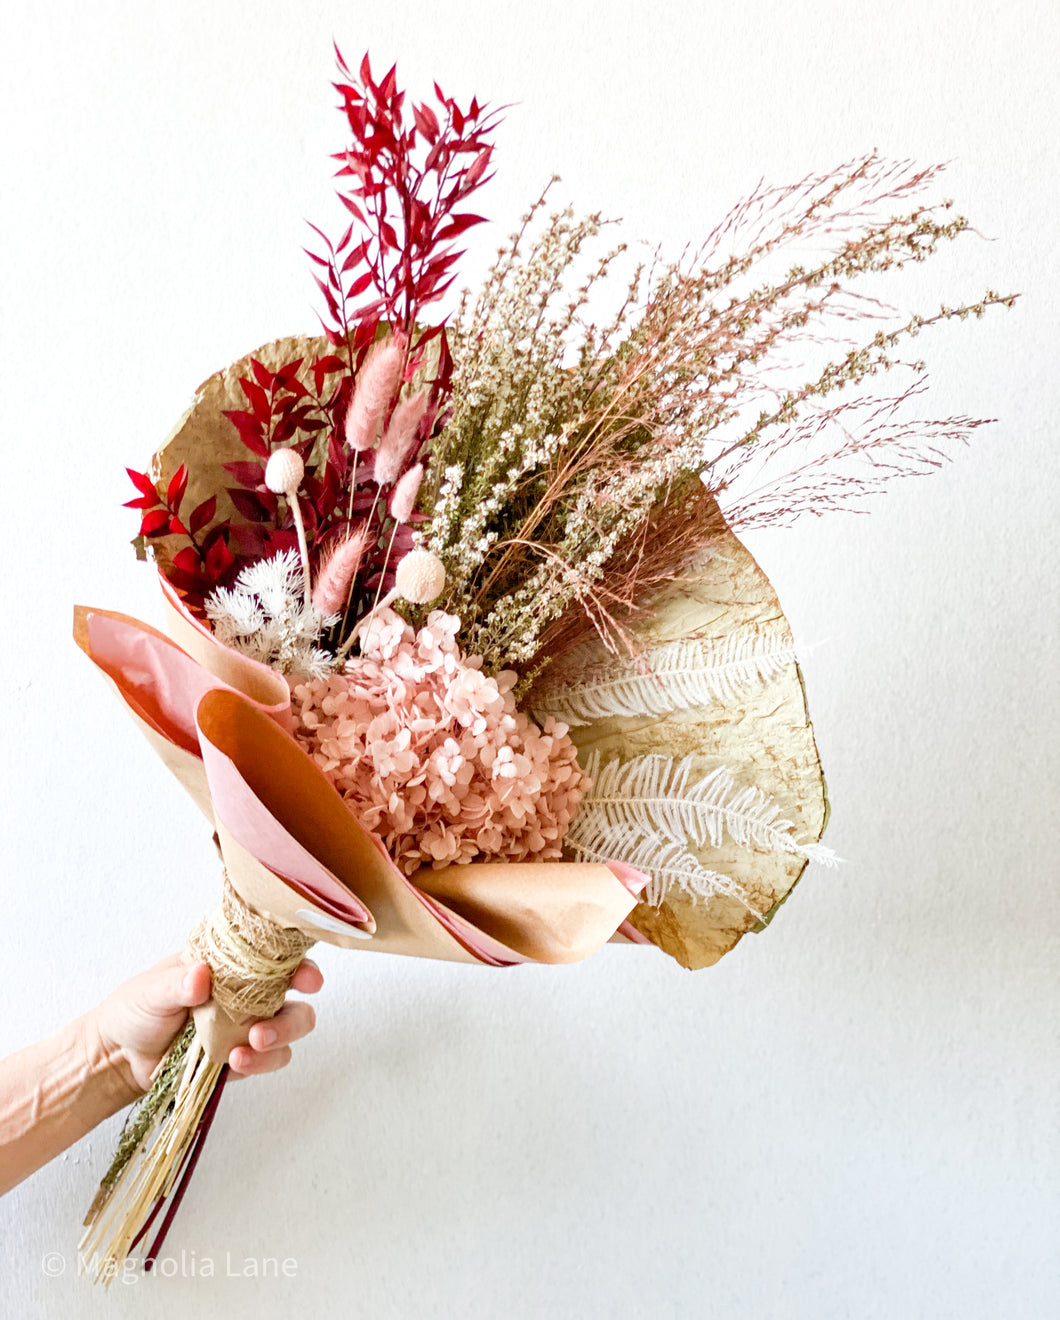 Cleopatra - Dried Flower Bouquet - Magnolia Lane